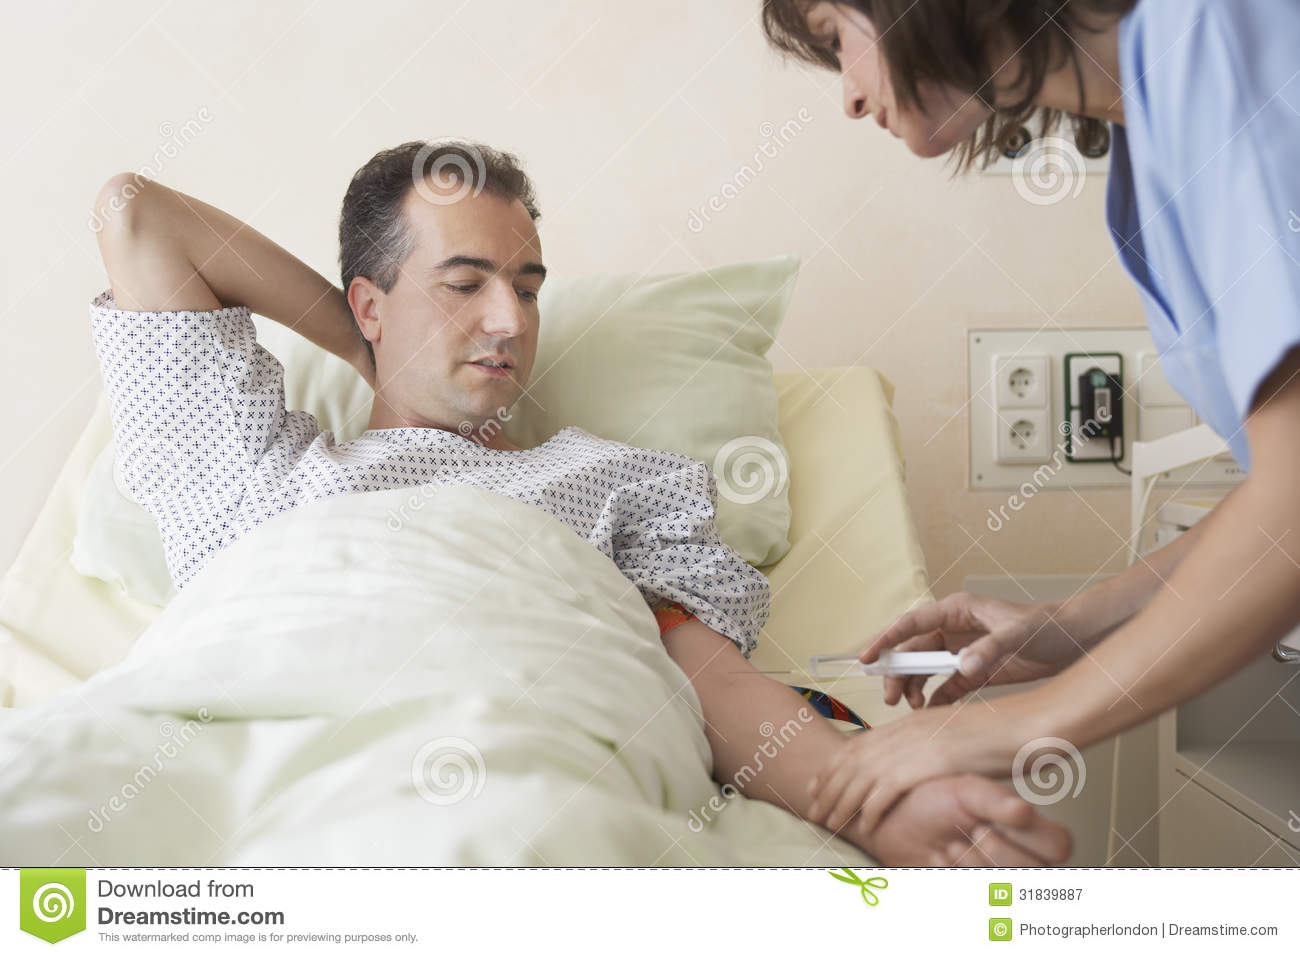 Male Patient On Hospital Bed